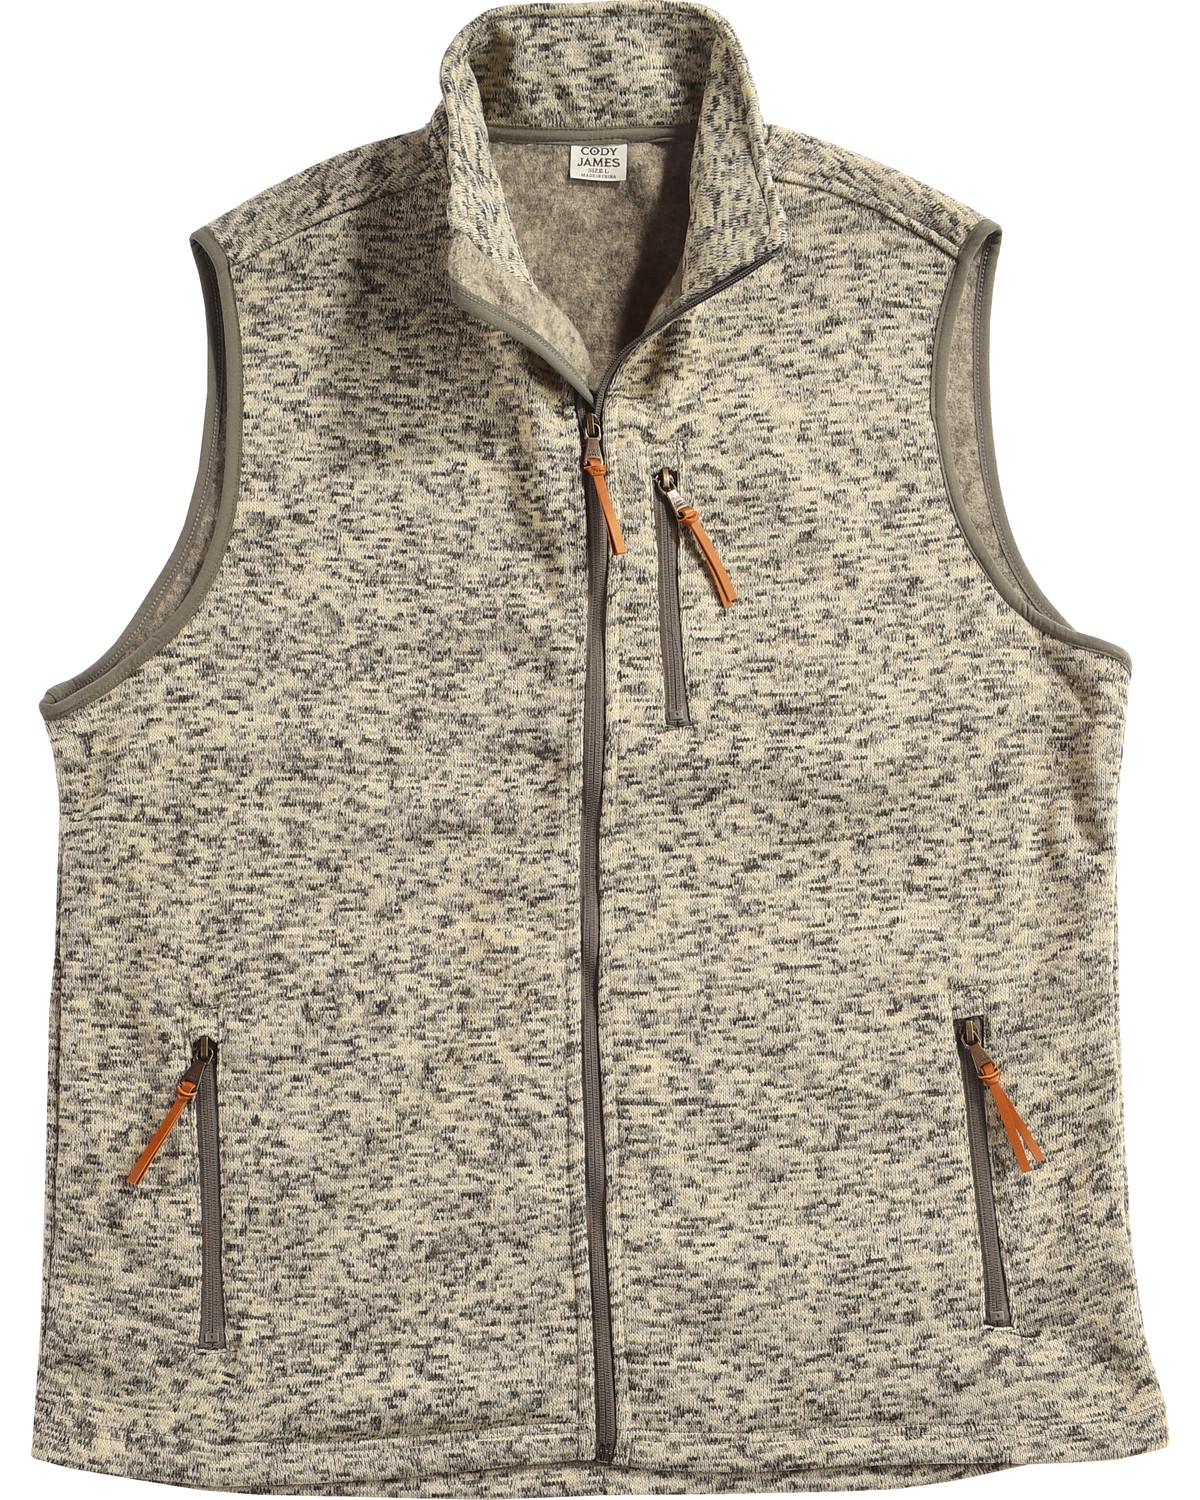 Cody James Men's Whipcrack Sweater Vest - Country Outfitter